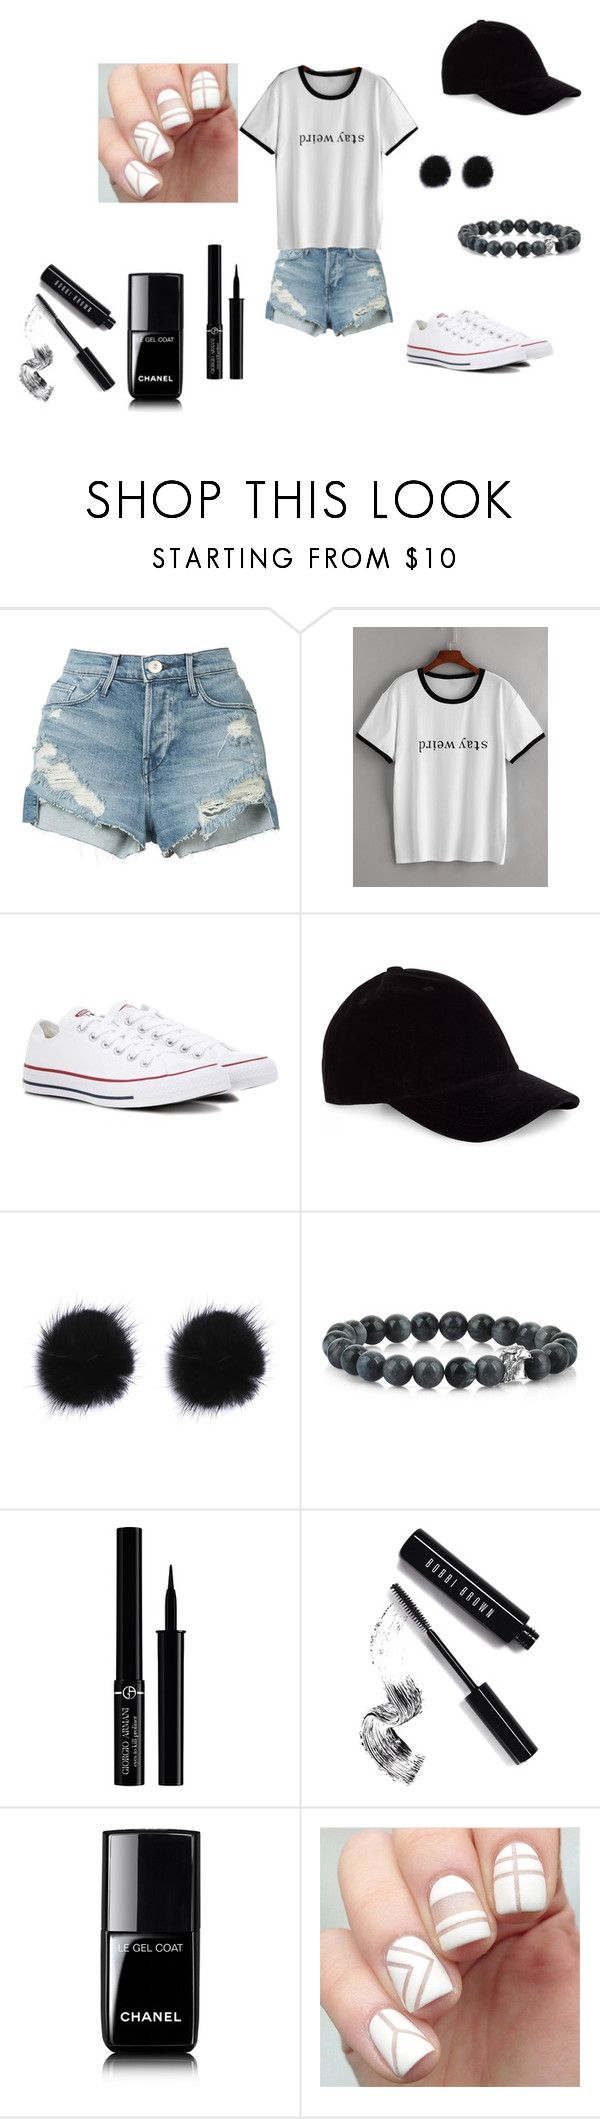 """stay weird"" by samanthawoollard on Polyvore featuring 3x1, Converse, Le Amonie, Giorgio Armani, Bobbi Brown Cosmetics and Chanel"